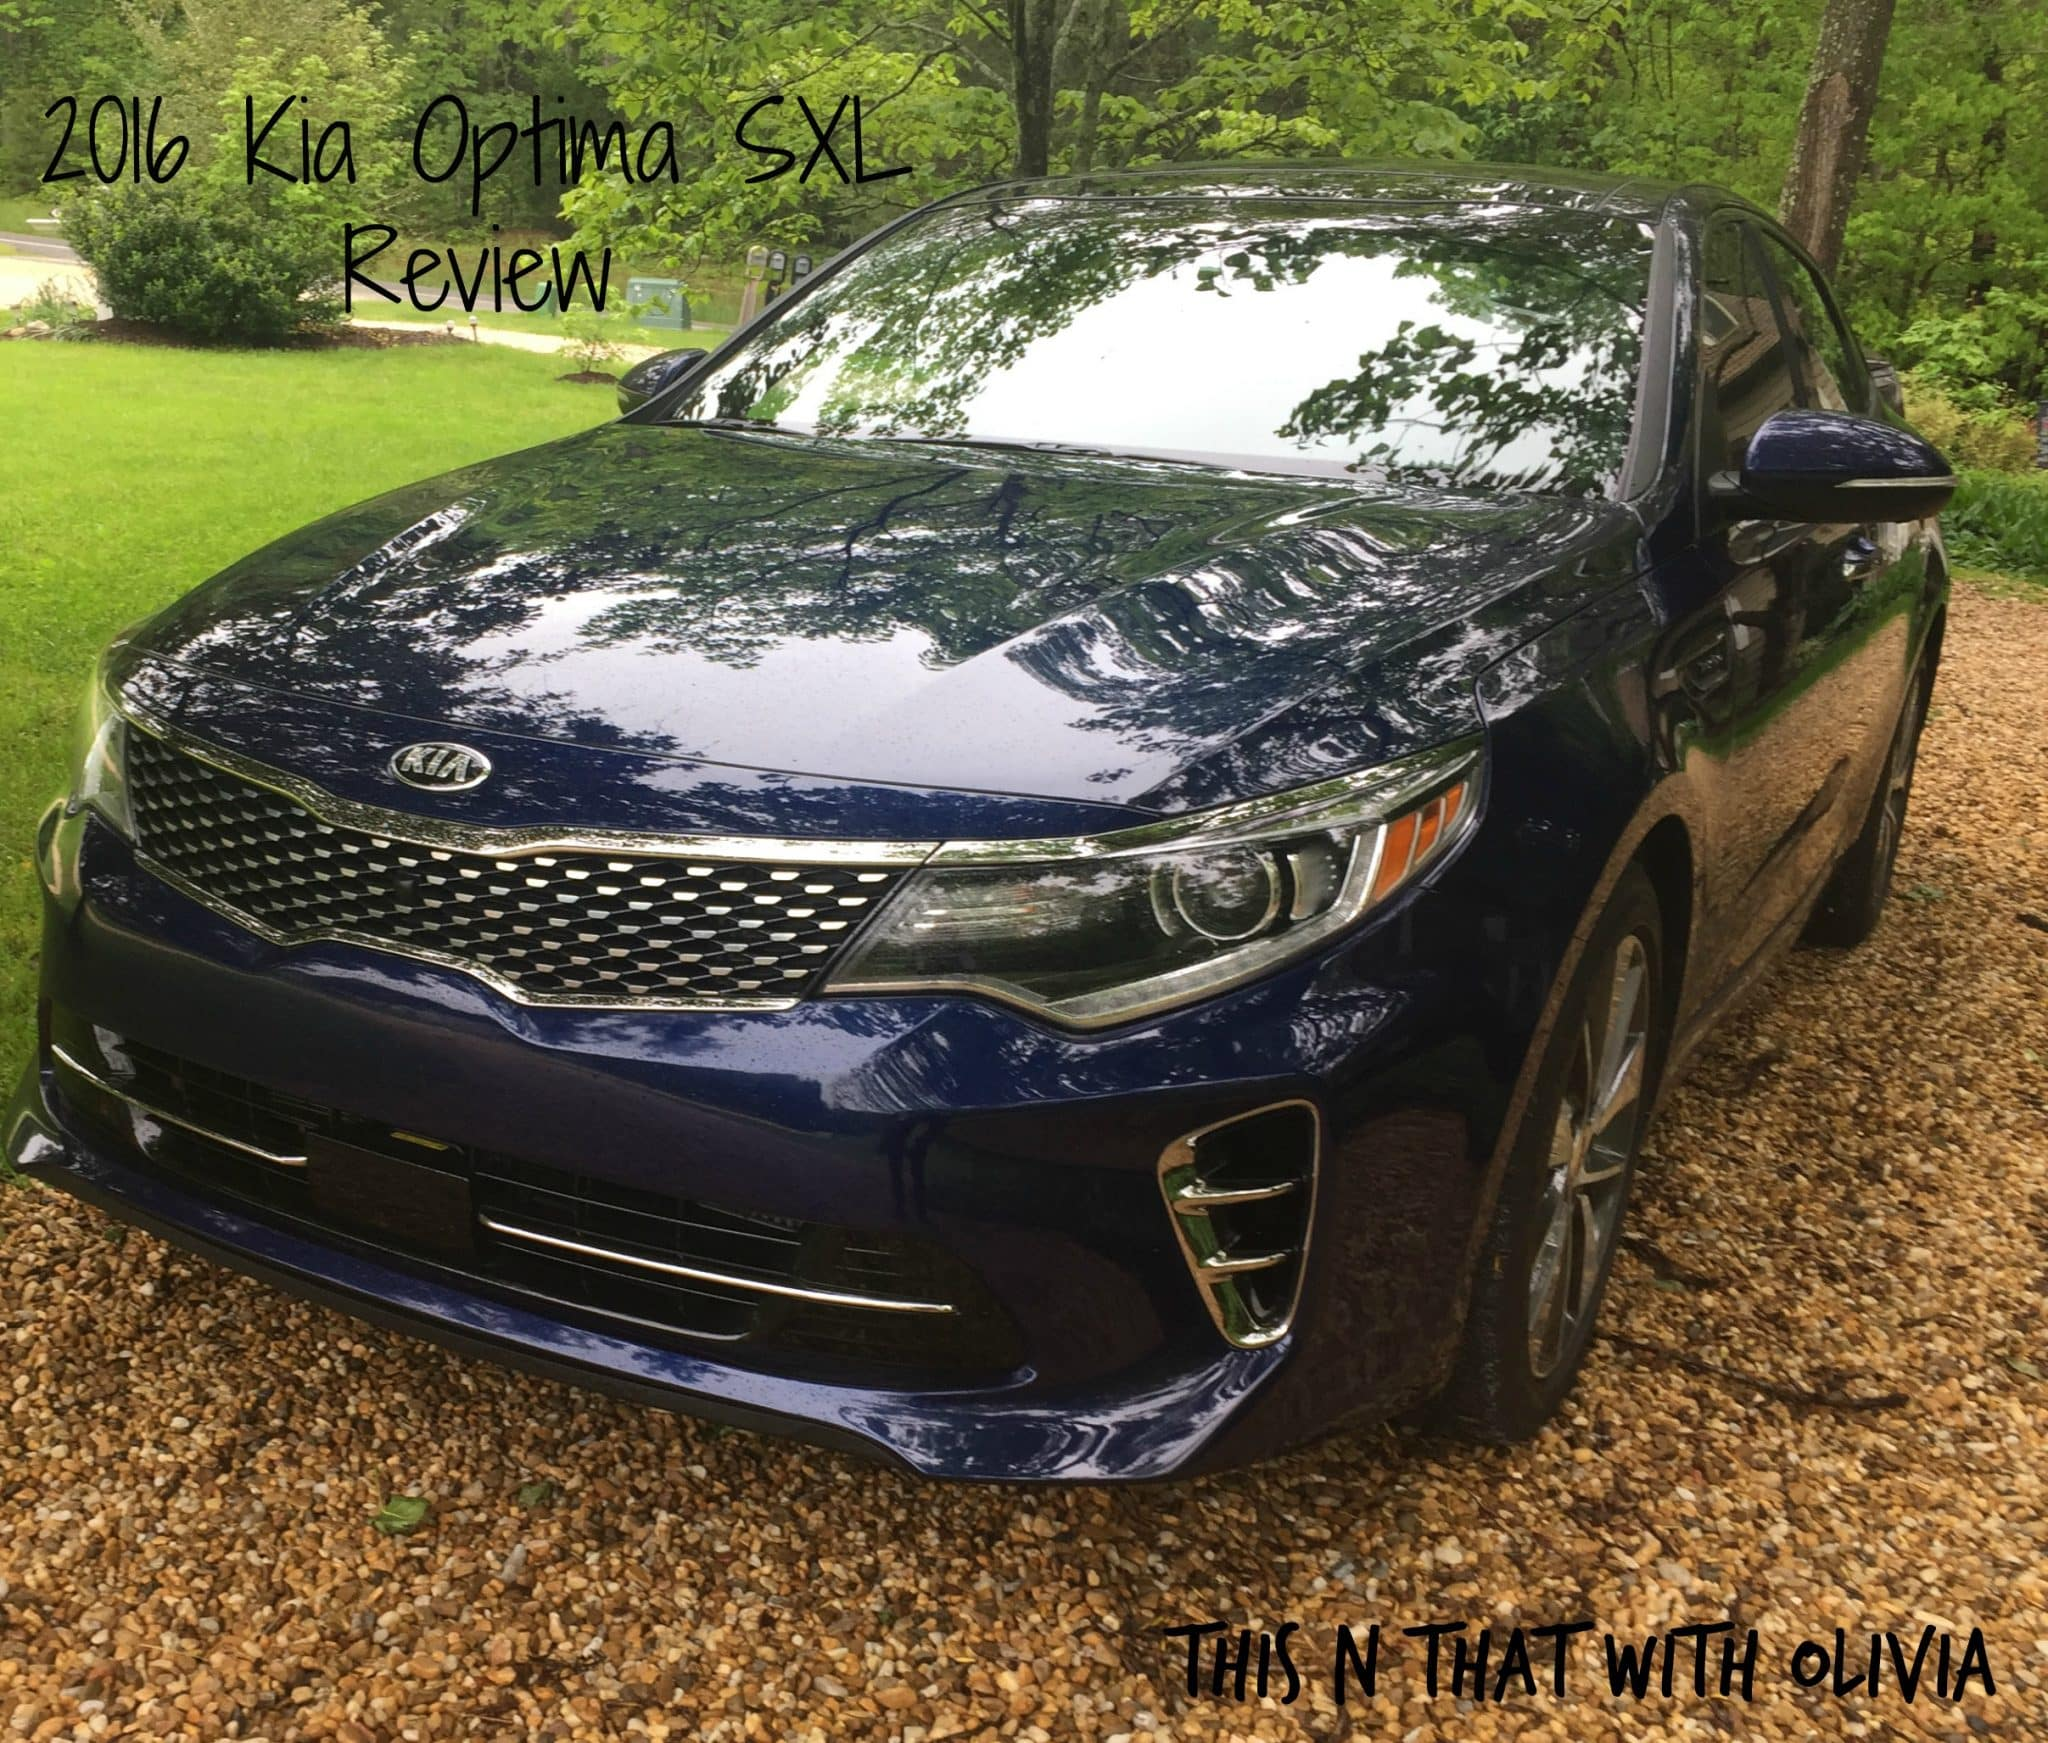 2016 kia optima sxl review drivekia kia ad. Black Bedroom Furniture Sets. Home Design Ideas